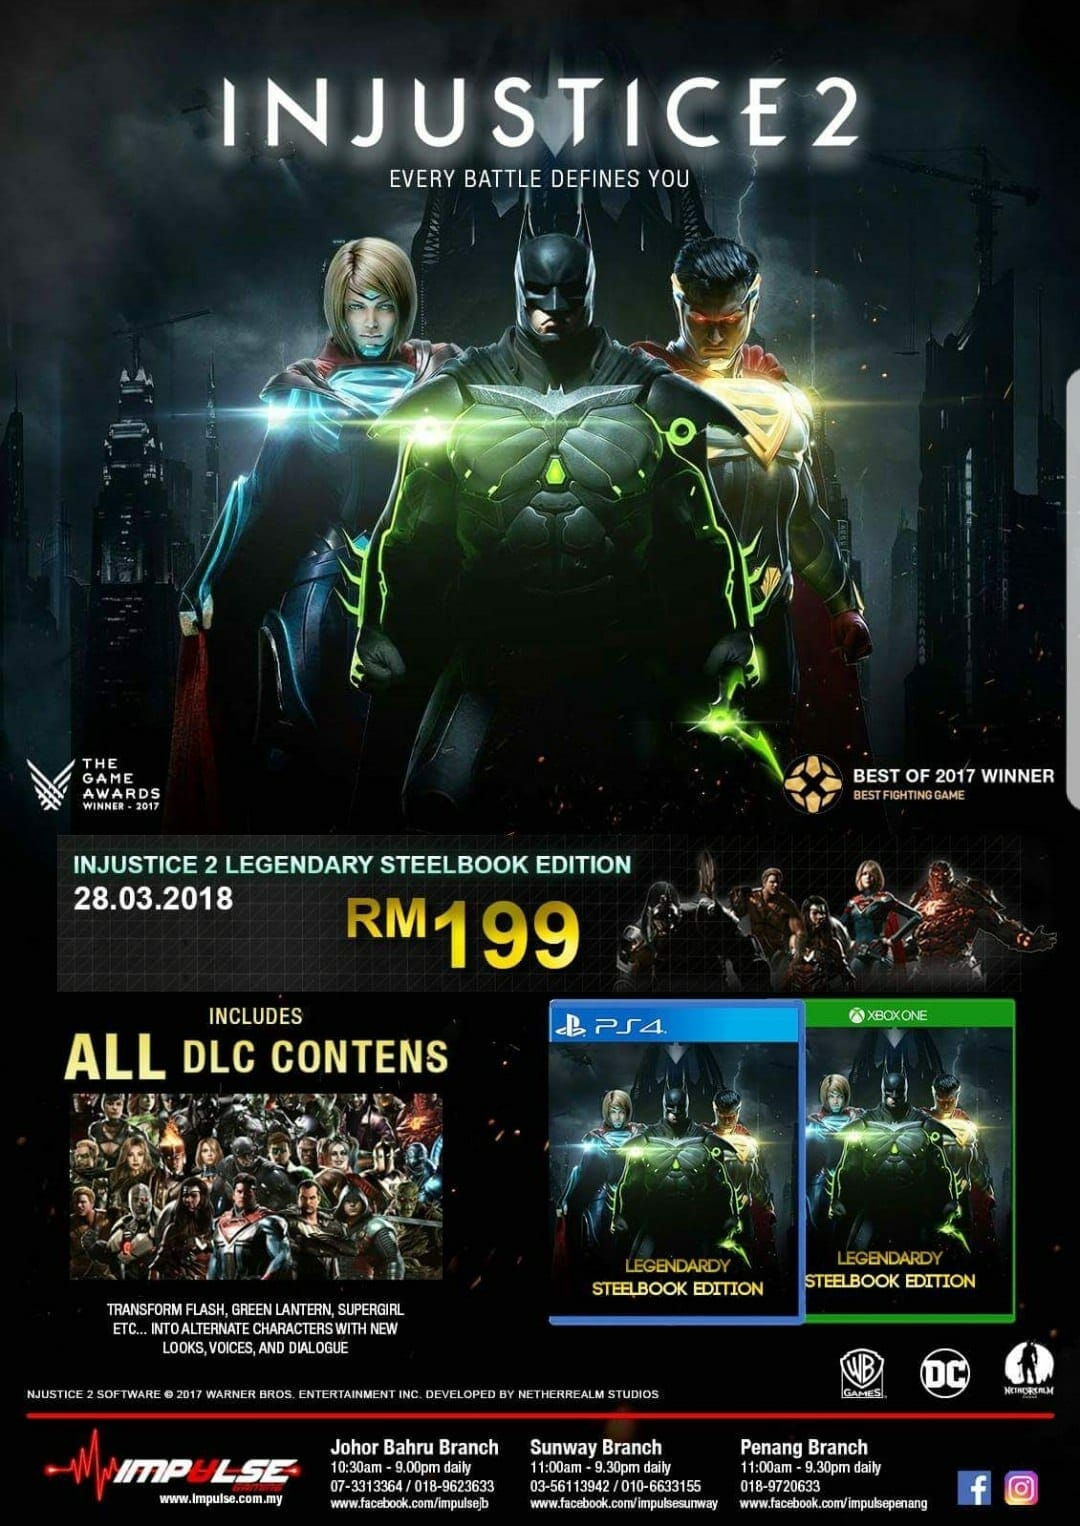 nmqQLJu - Injustice 2 Legendary Edition Spotted for Release in Late March for Xbox One and PS4